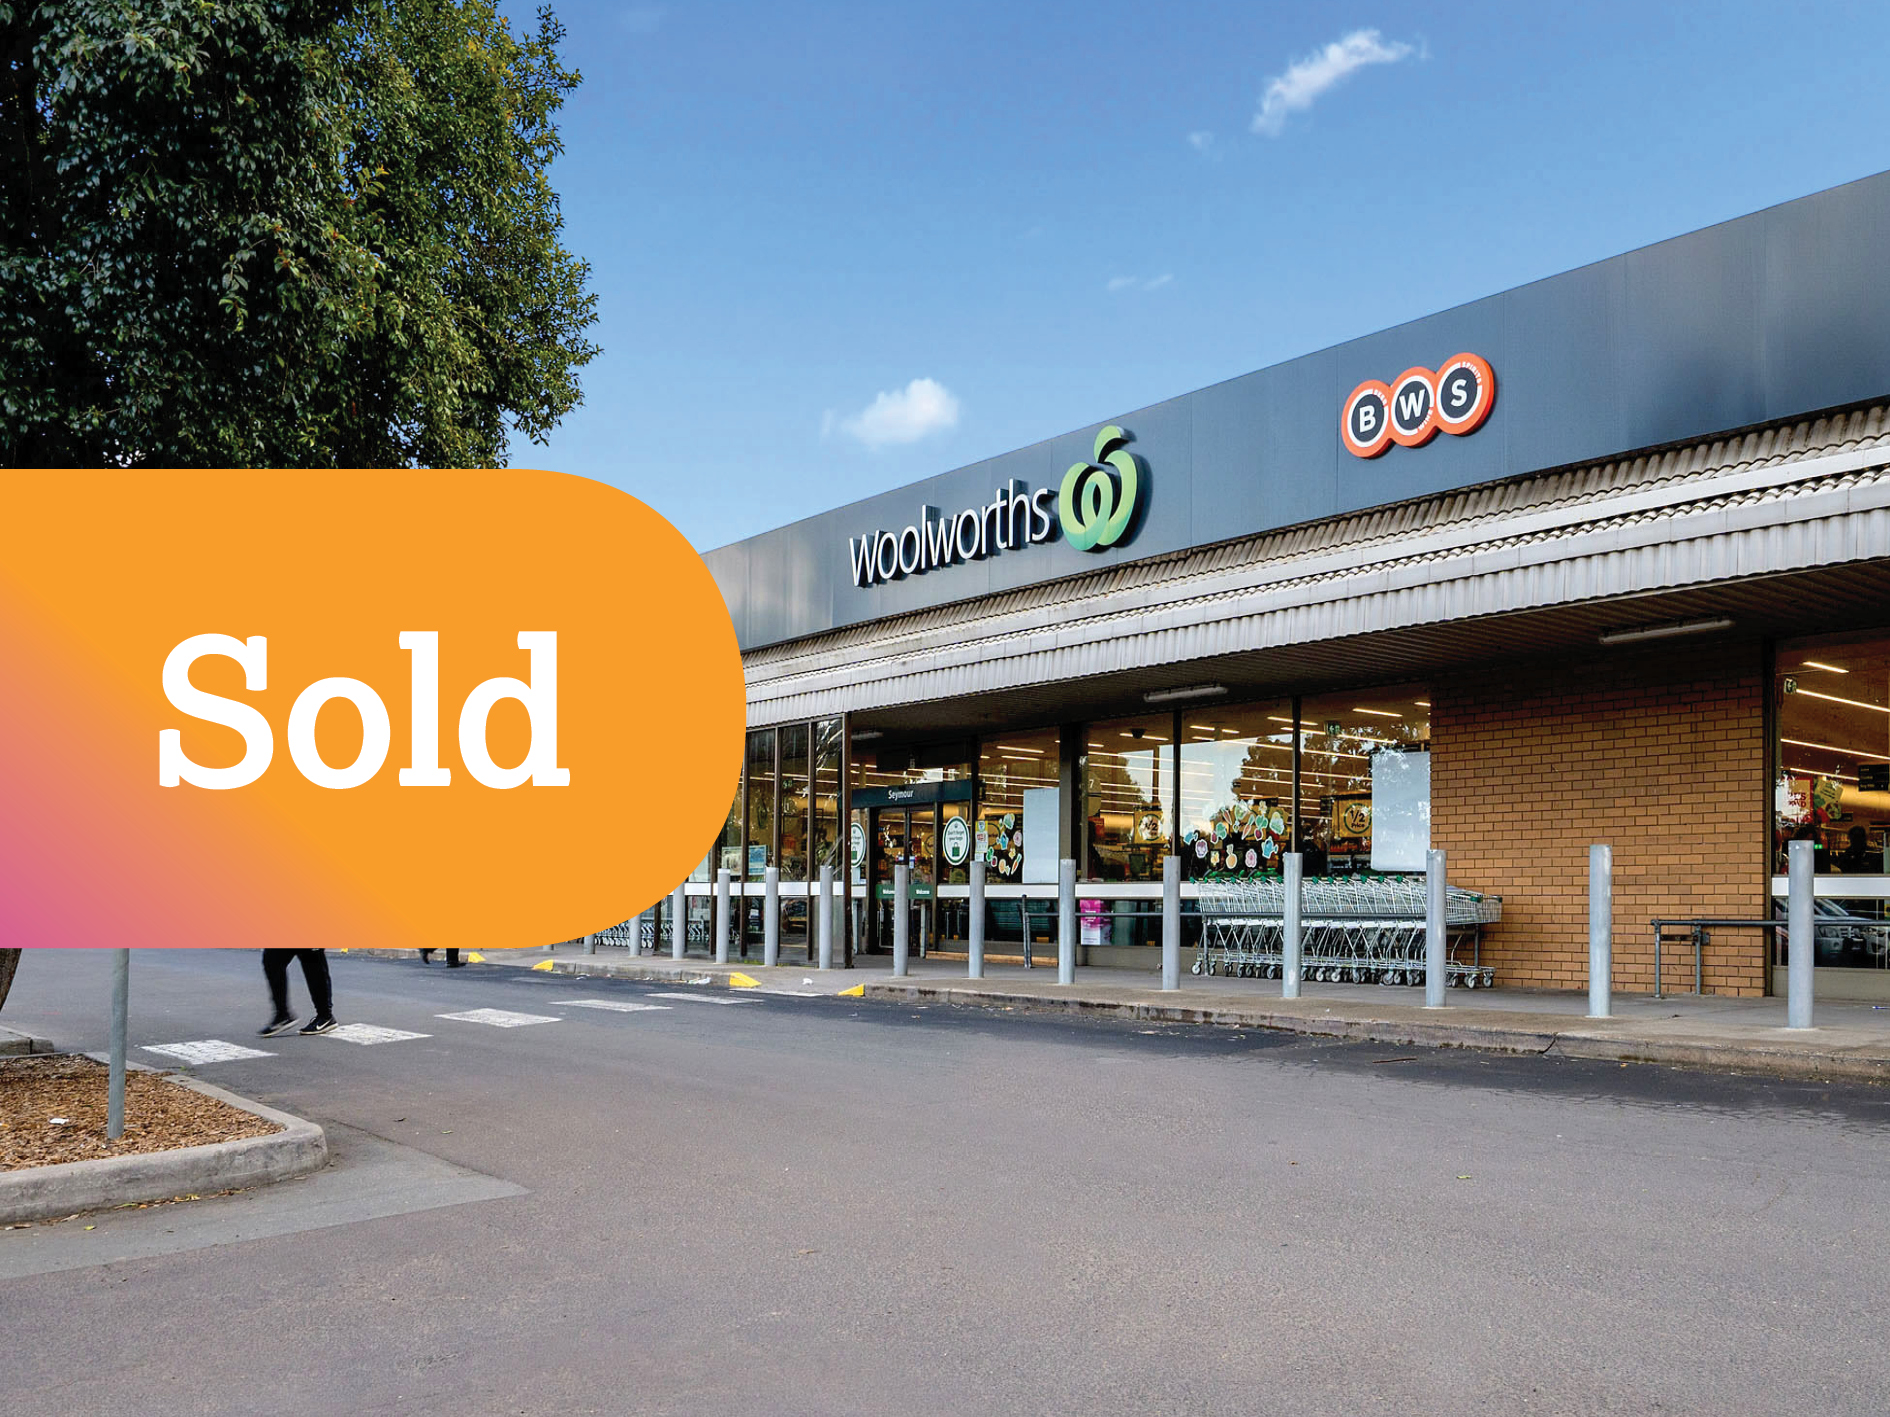 Classic Woolworths Investment, Freestanding, Net Lease